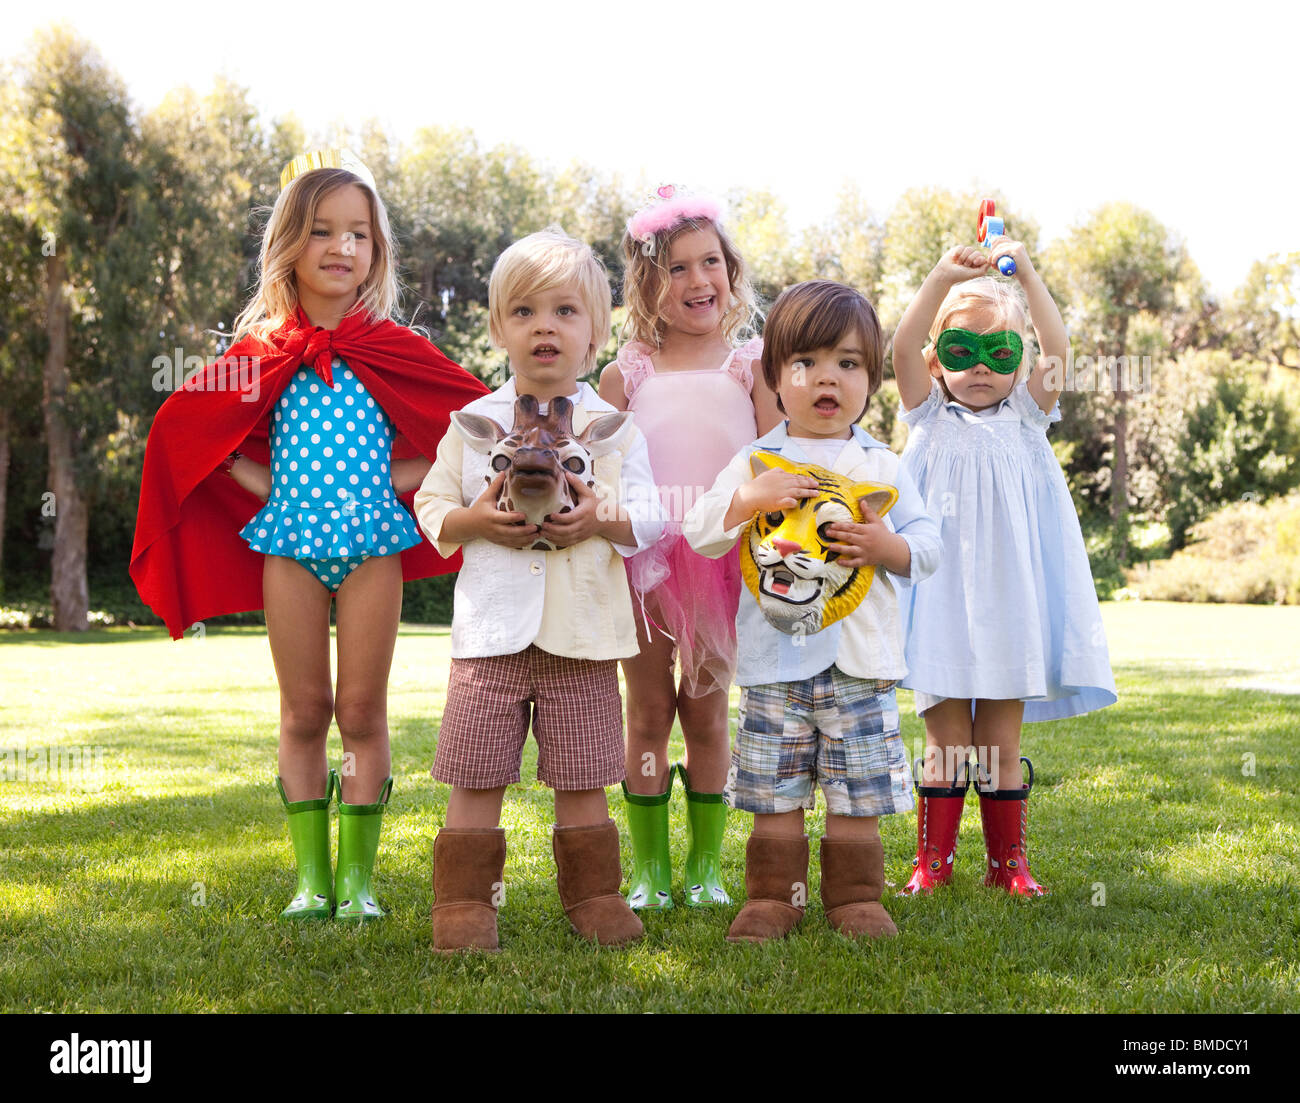 Group Of Kids Playing Dress Up Stock Photo Royalty Free Image 29799029 - Alamy